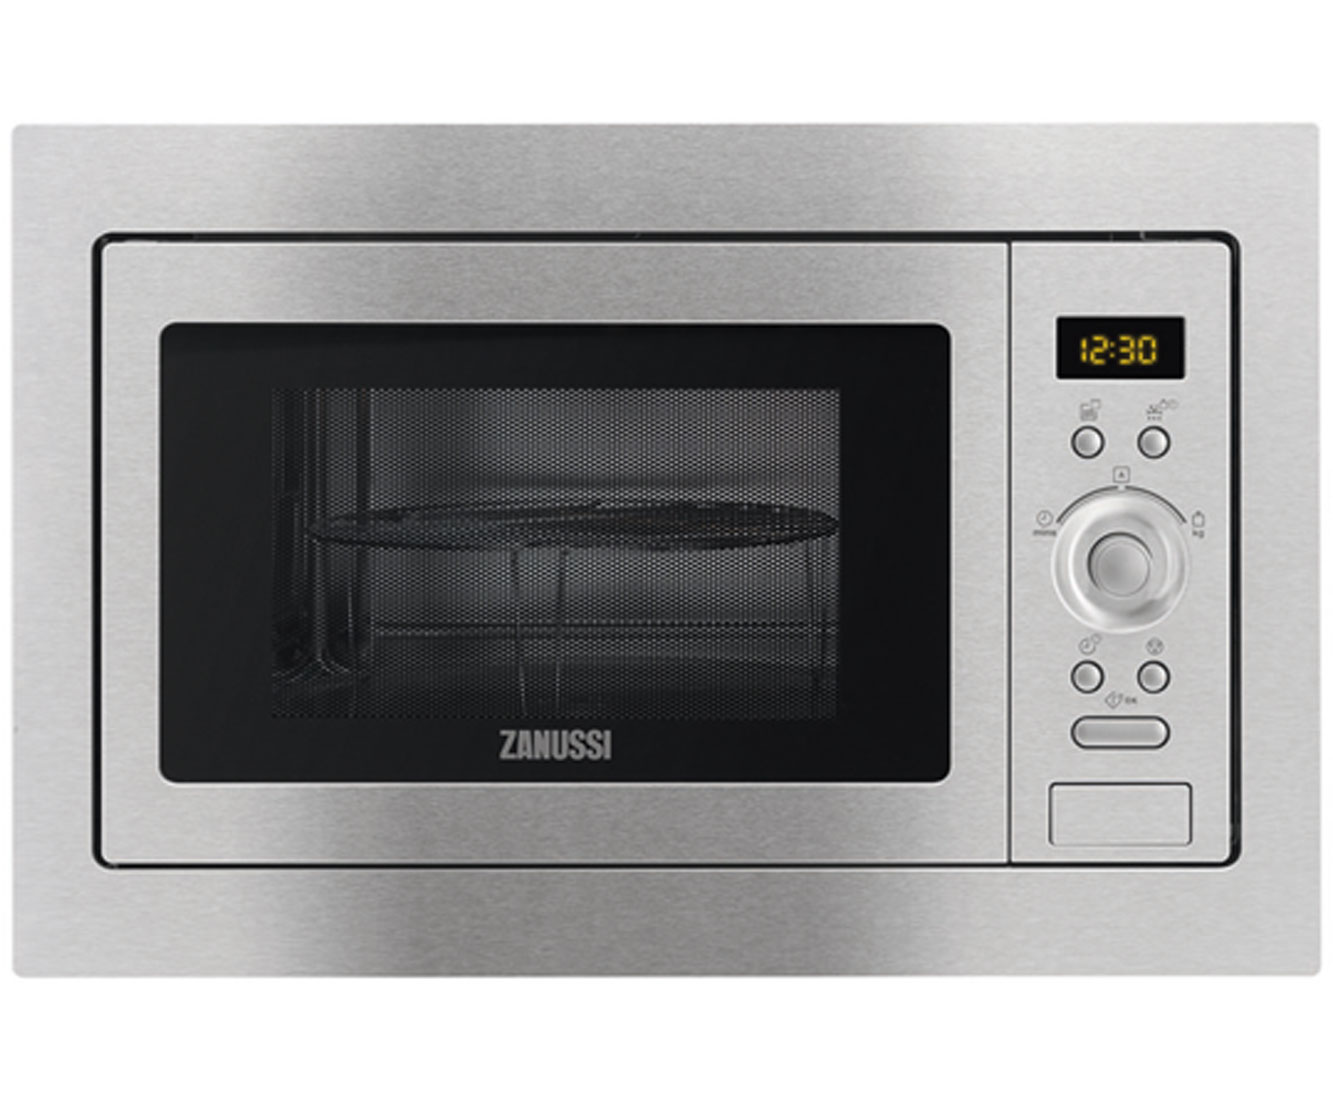 Zanussi ZSG25224XA Integrated Microwave Oven in Stainless Steel